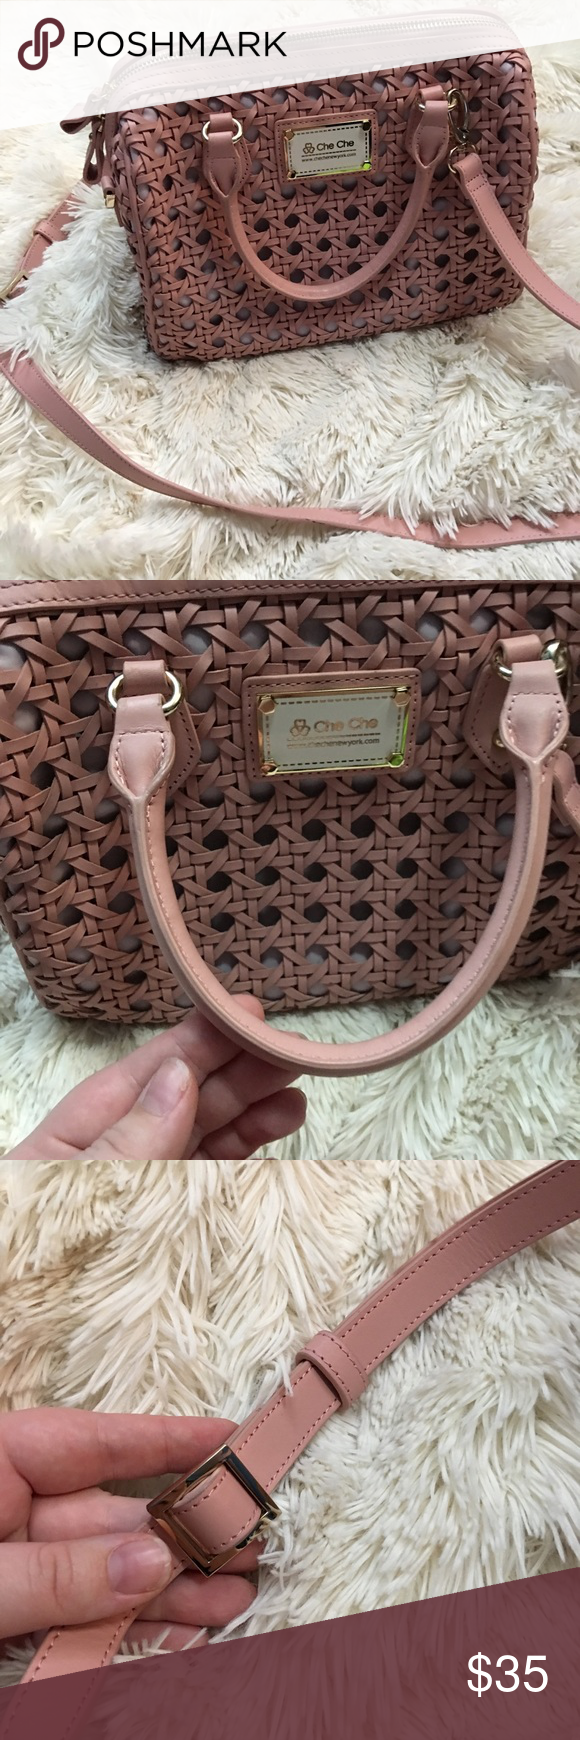 55363f08196d Pink Purse🎀 Che Che New York Purse. Lightly used. Includes small straps and